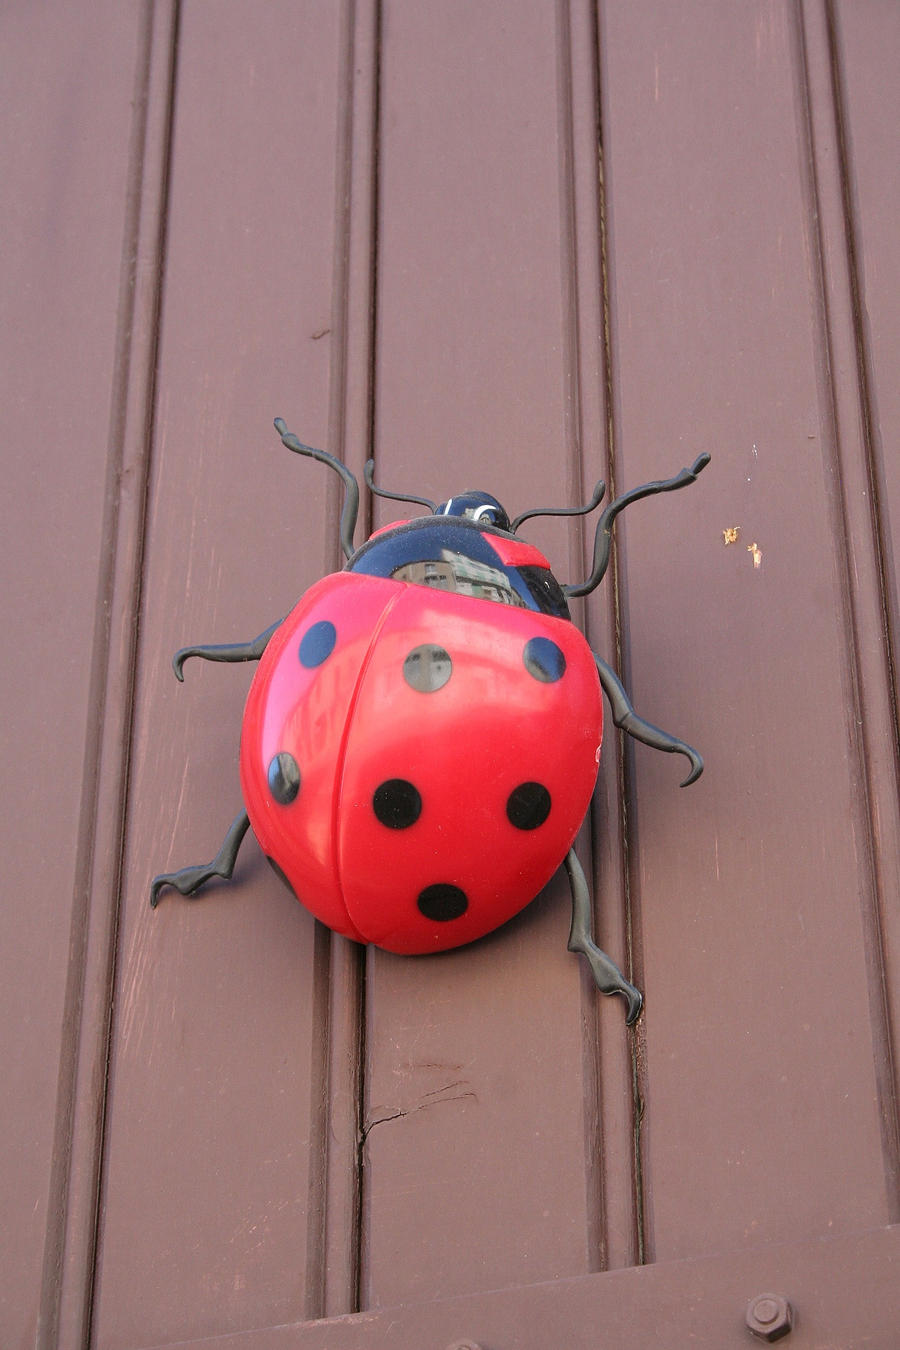 lady bug figure by ingeline-art